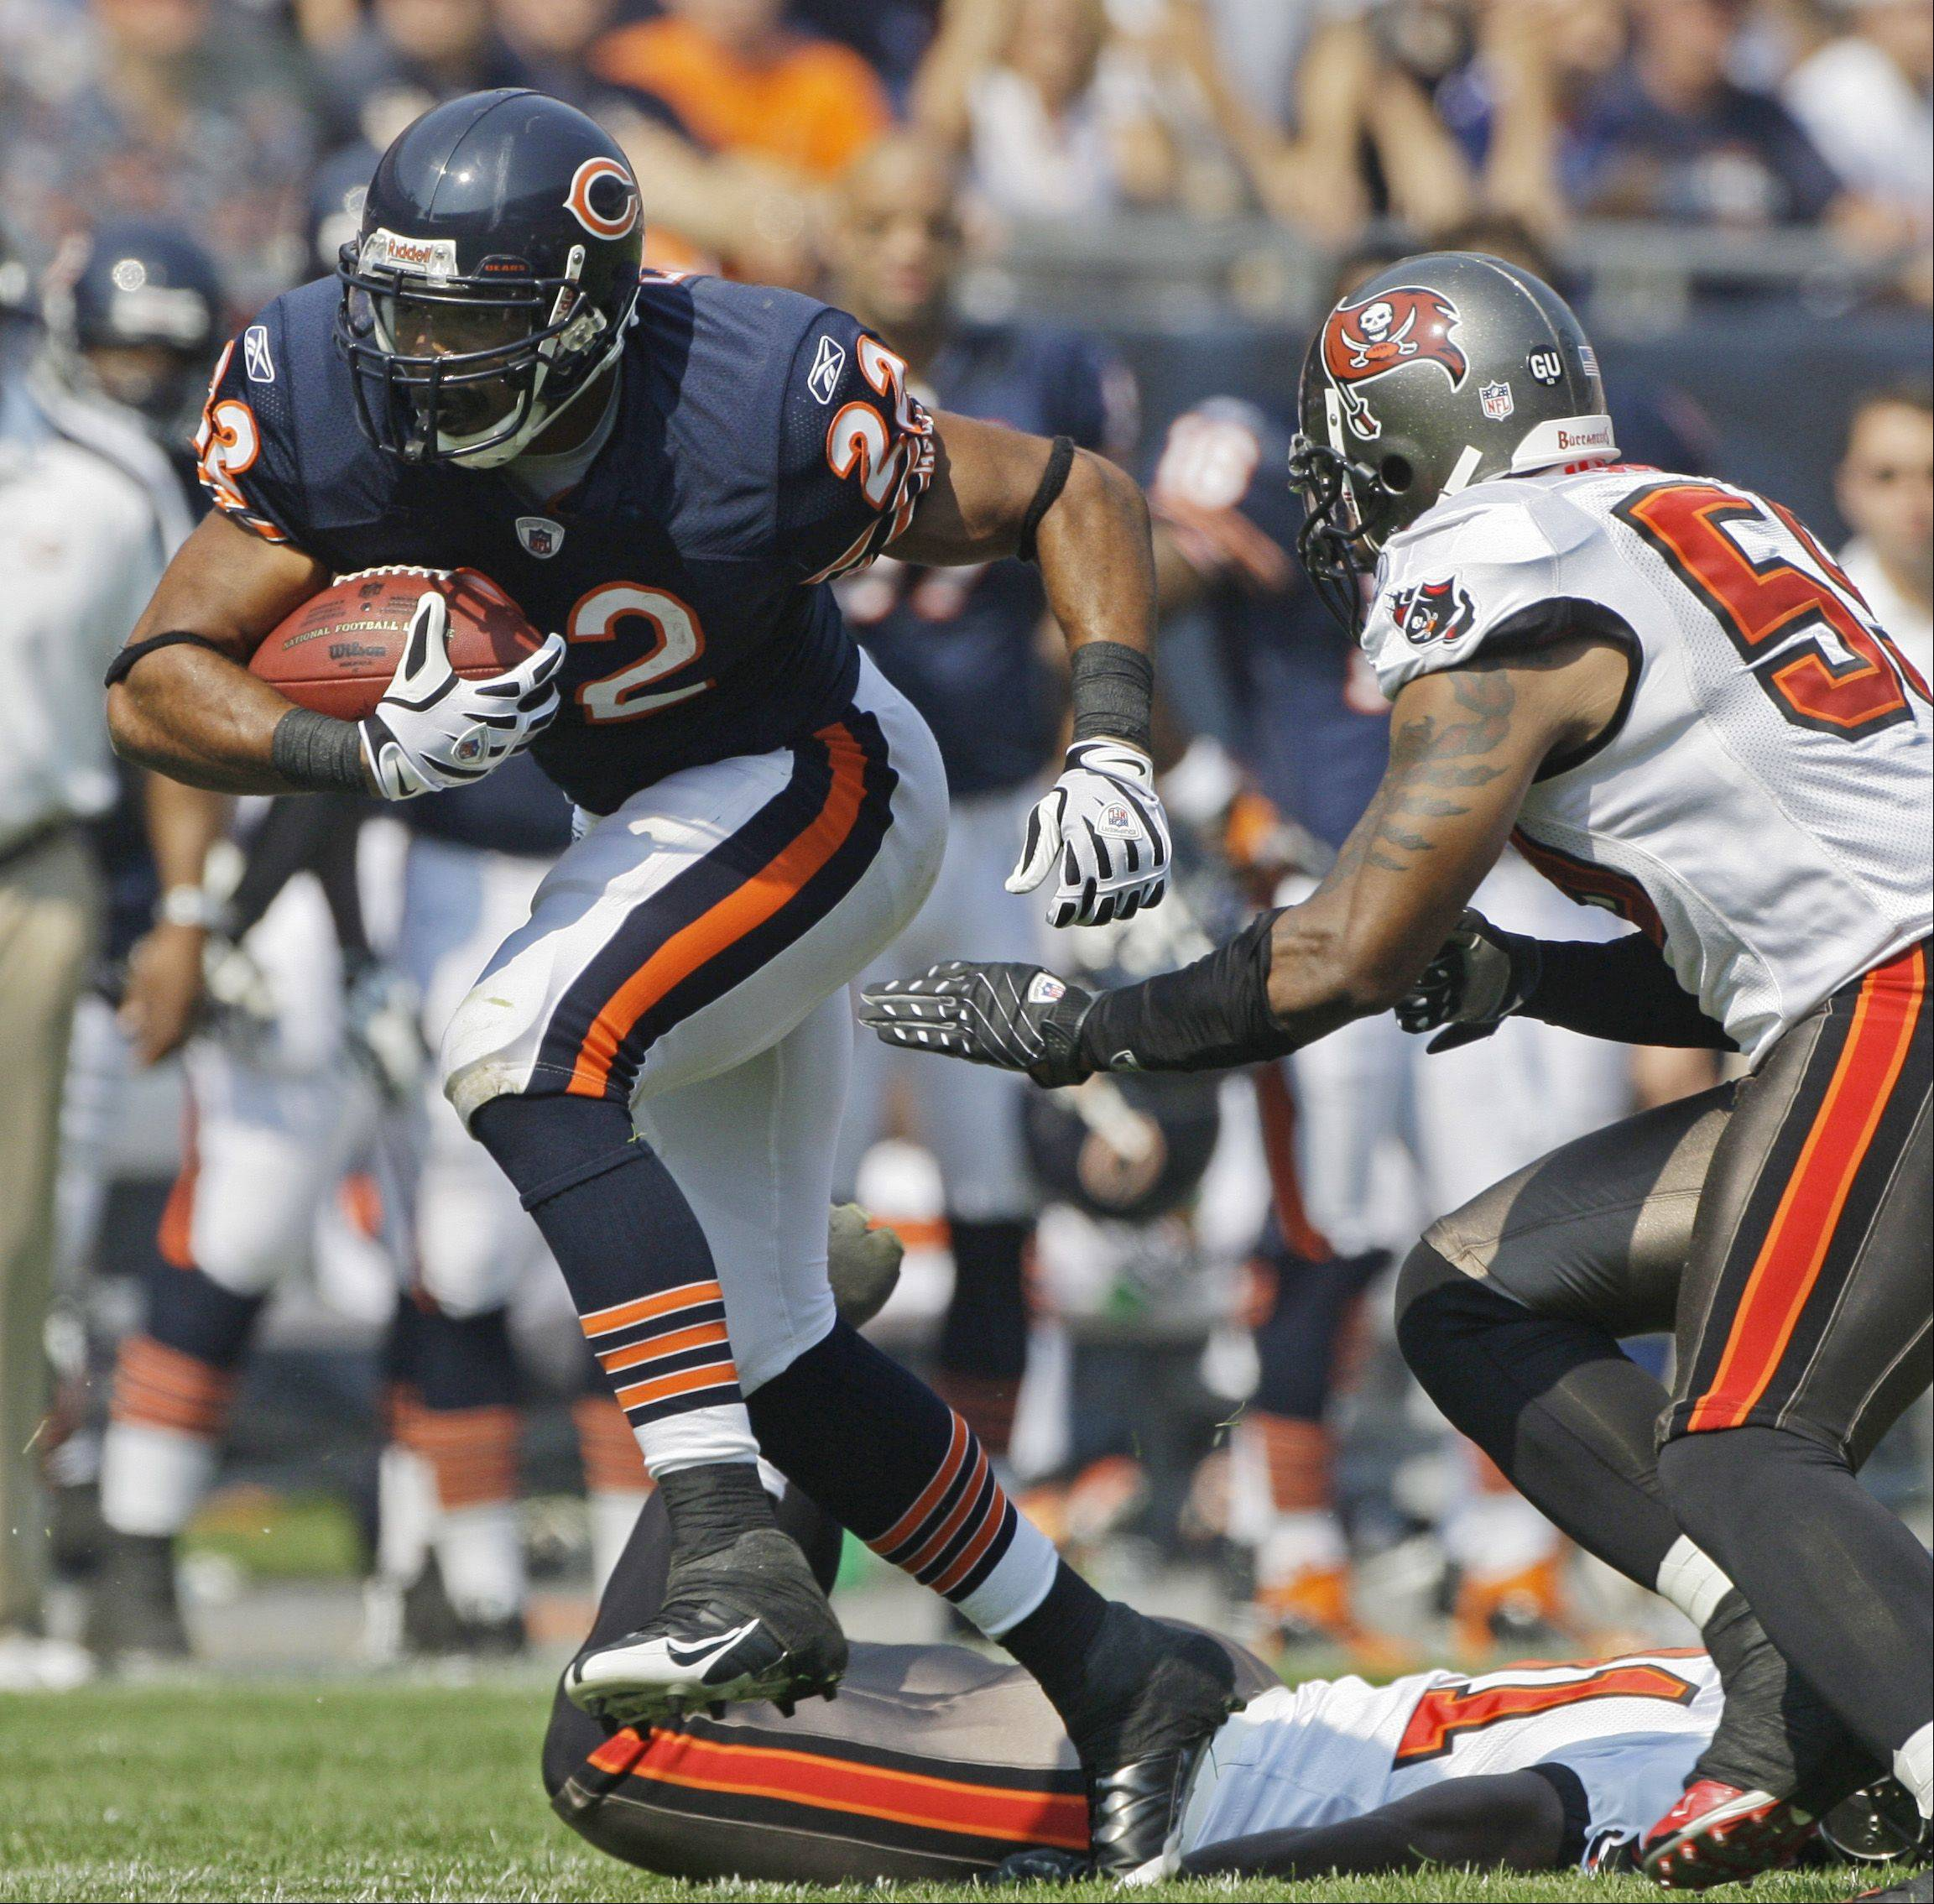 Matt Forte, who will make $550,000 in 2011, was 10th in the NFL last season with 1,616 yards from scrimmage.